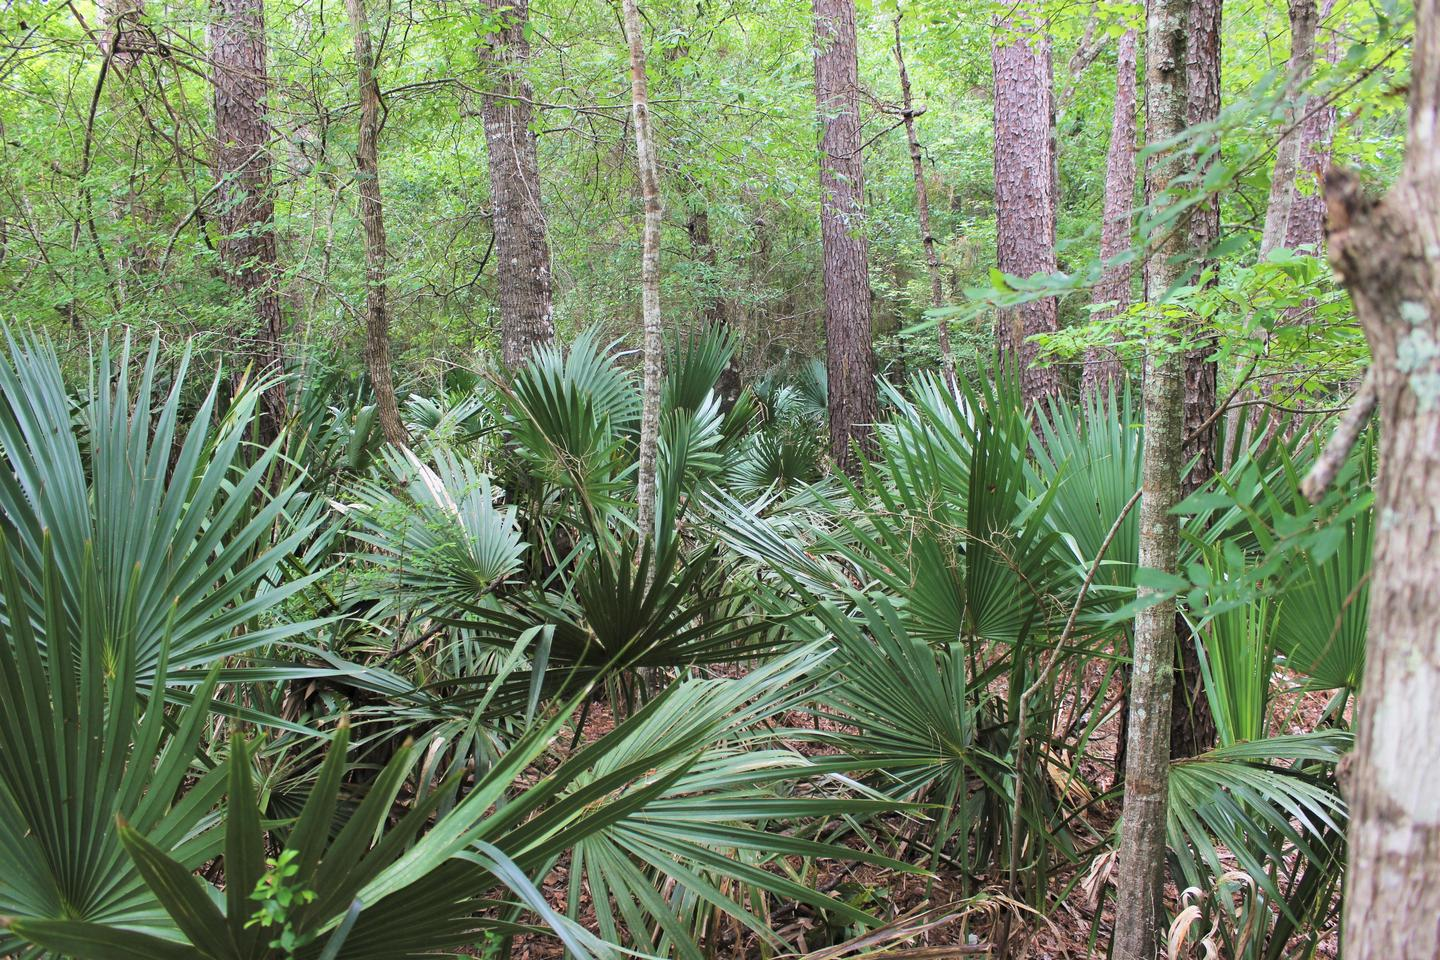 PalmettosDwarf palmettos grow in the Big Thicket's palmetto hardwood flats.